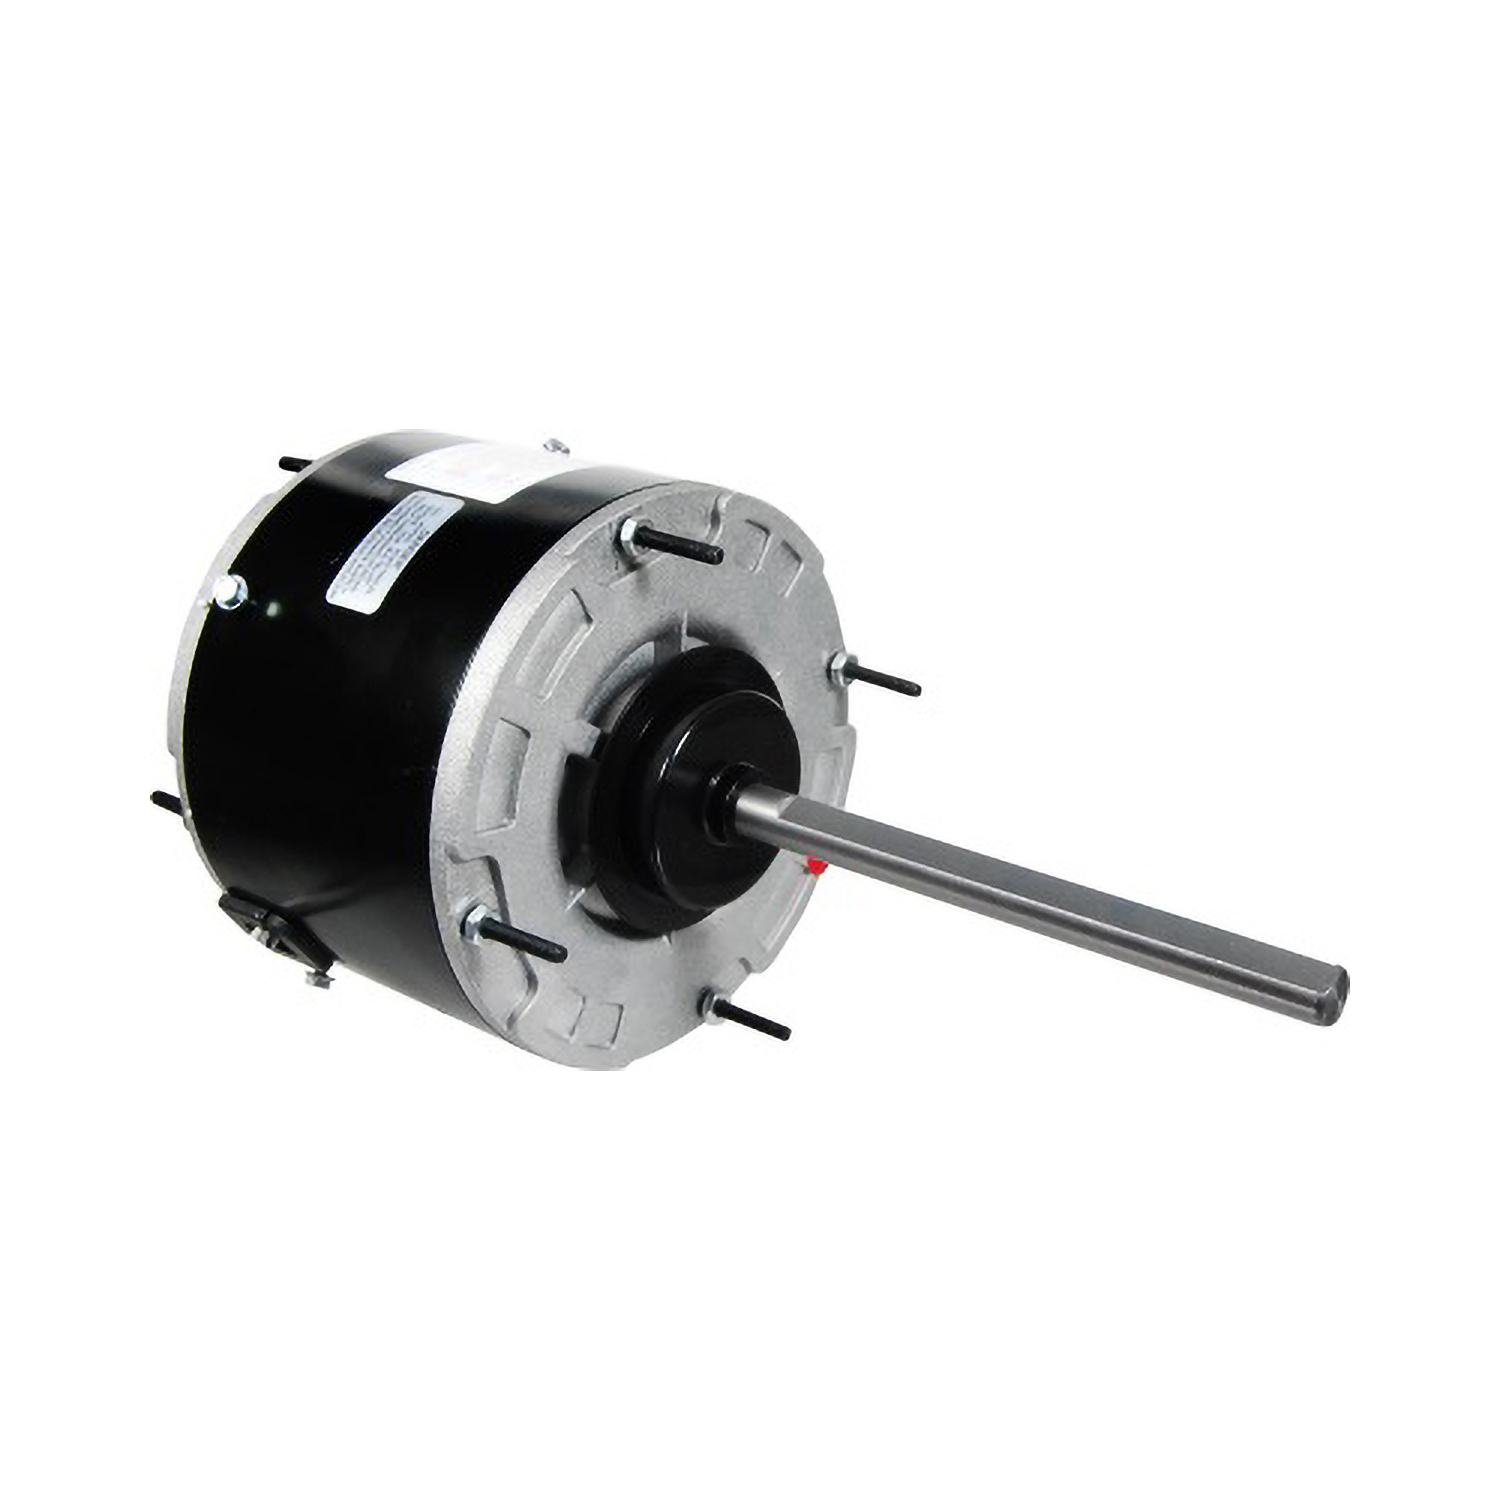 hight resolution of vulcan 48 frame 70 degree c condenser fan motor 1 2 hp 460 volt 1075 rpm packard online